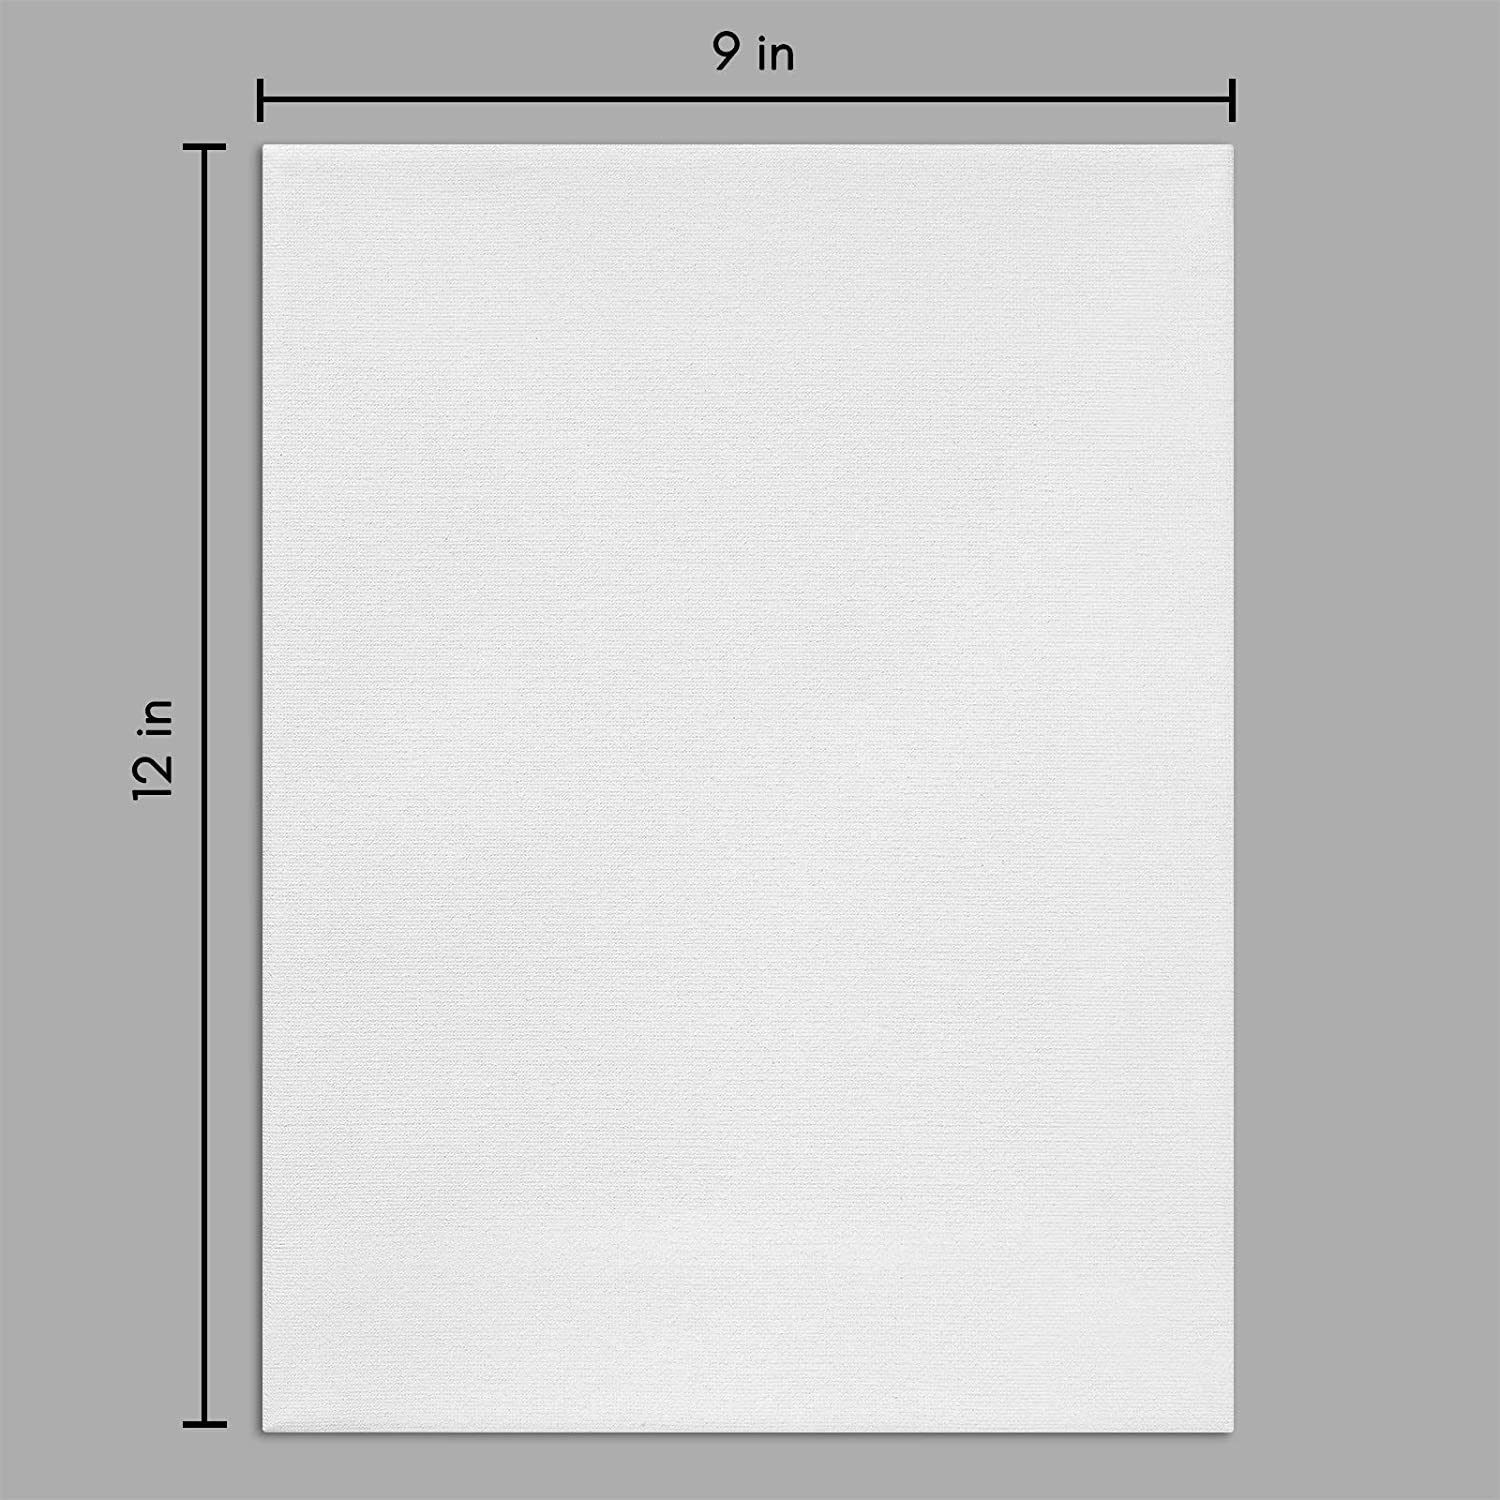 miniature 15 - Americanflat Stretched Canvas in White 100% Cotton Wooden Frames & Acid Free